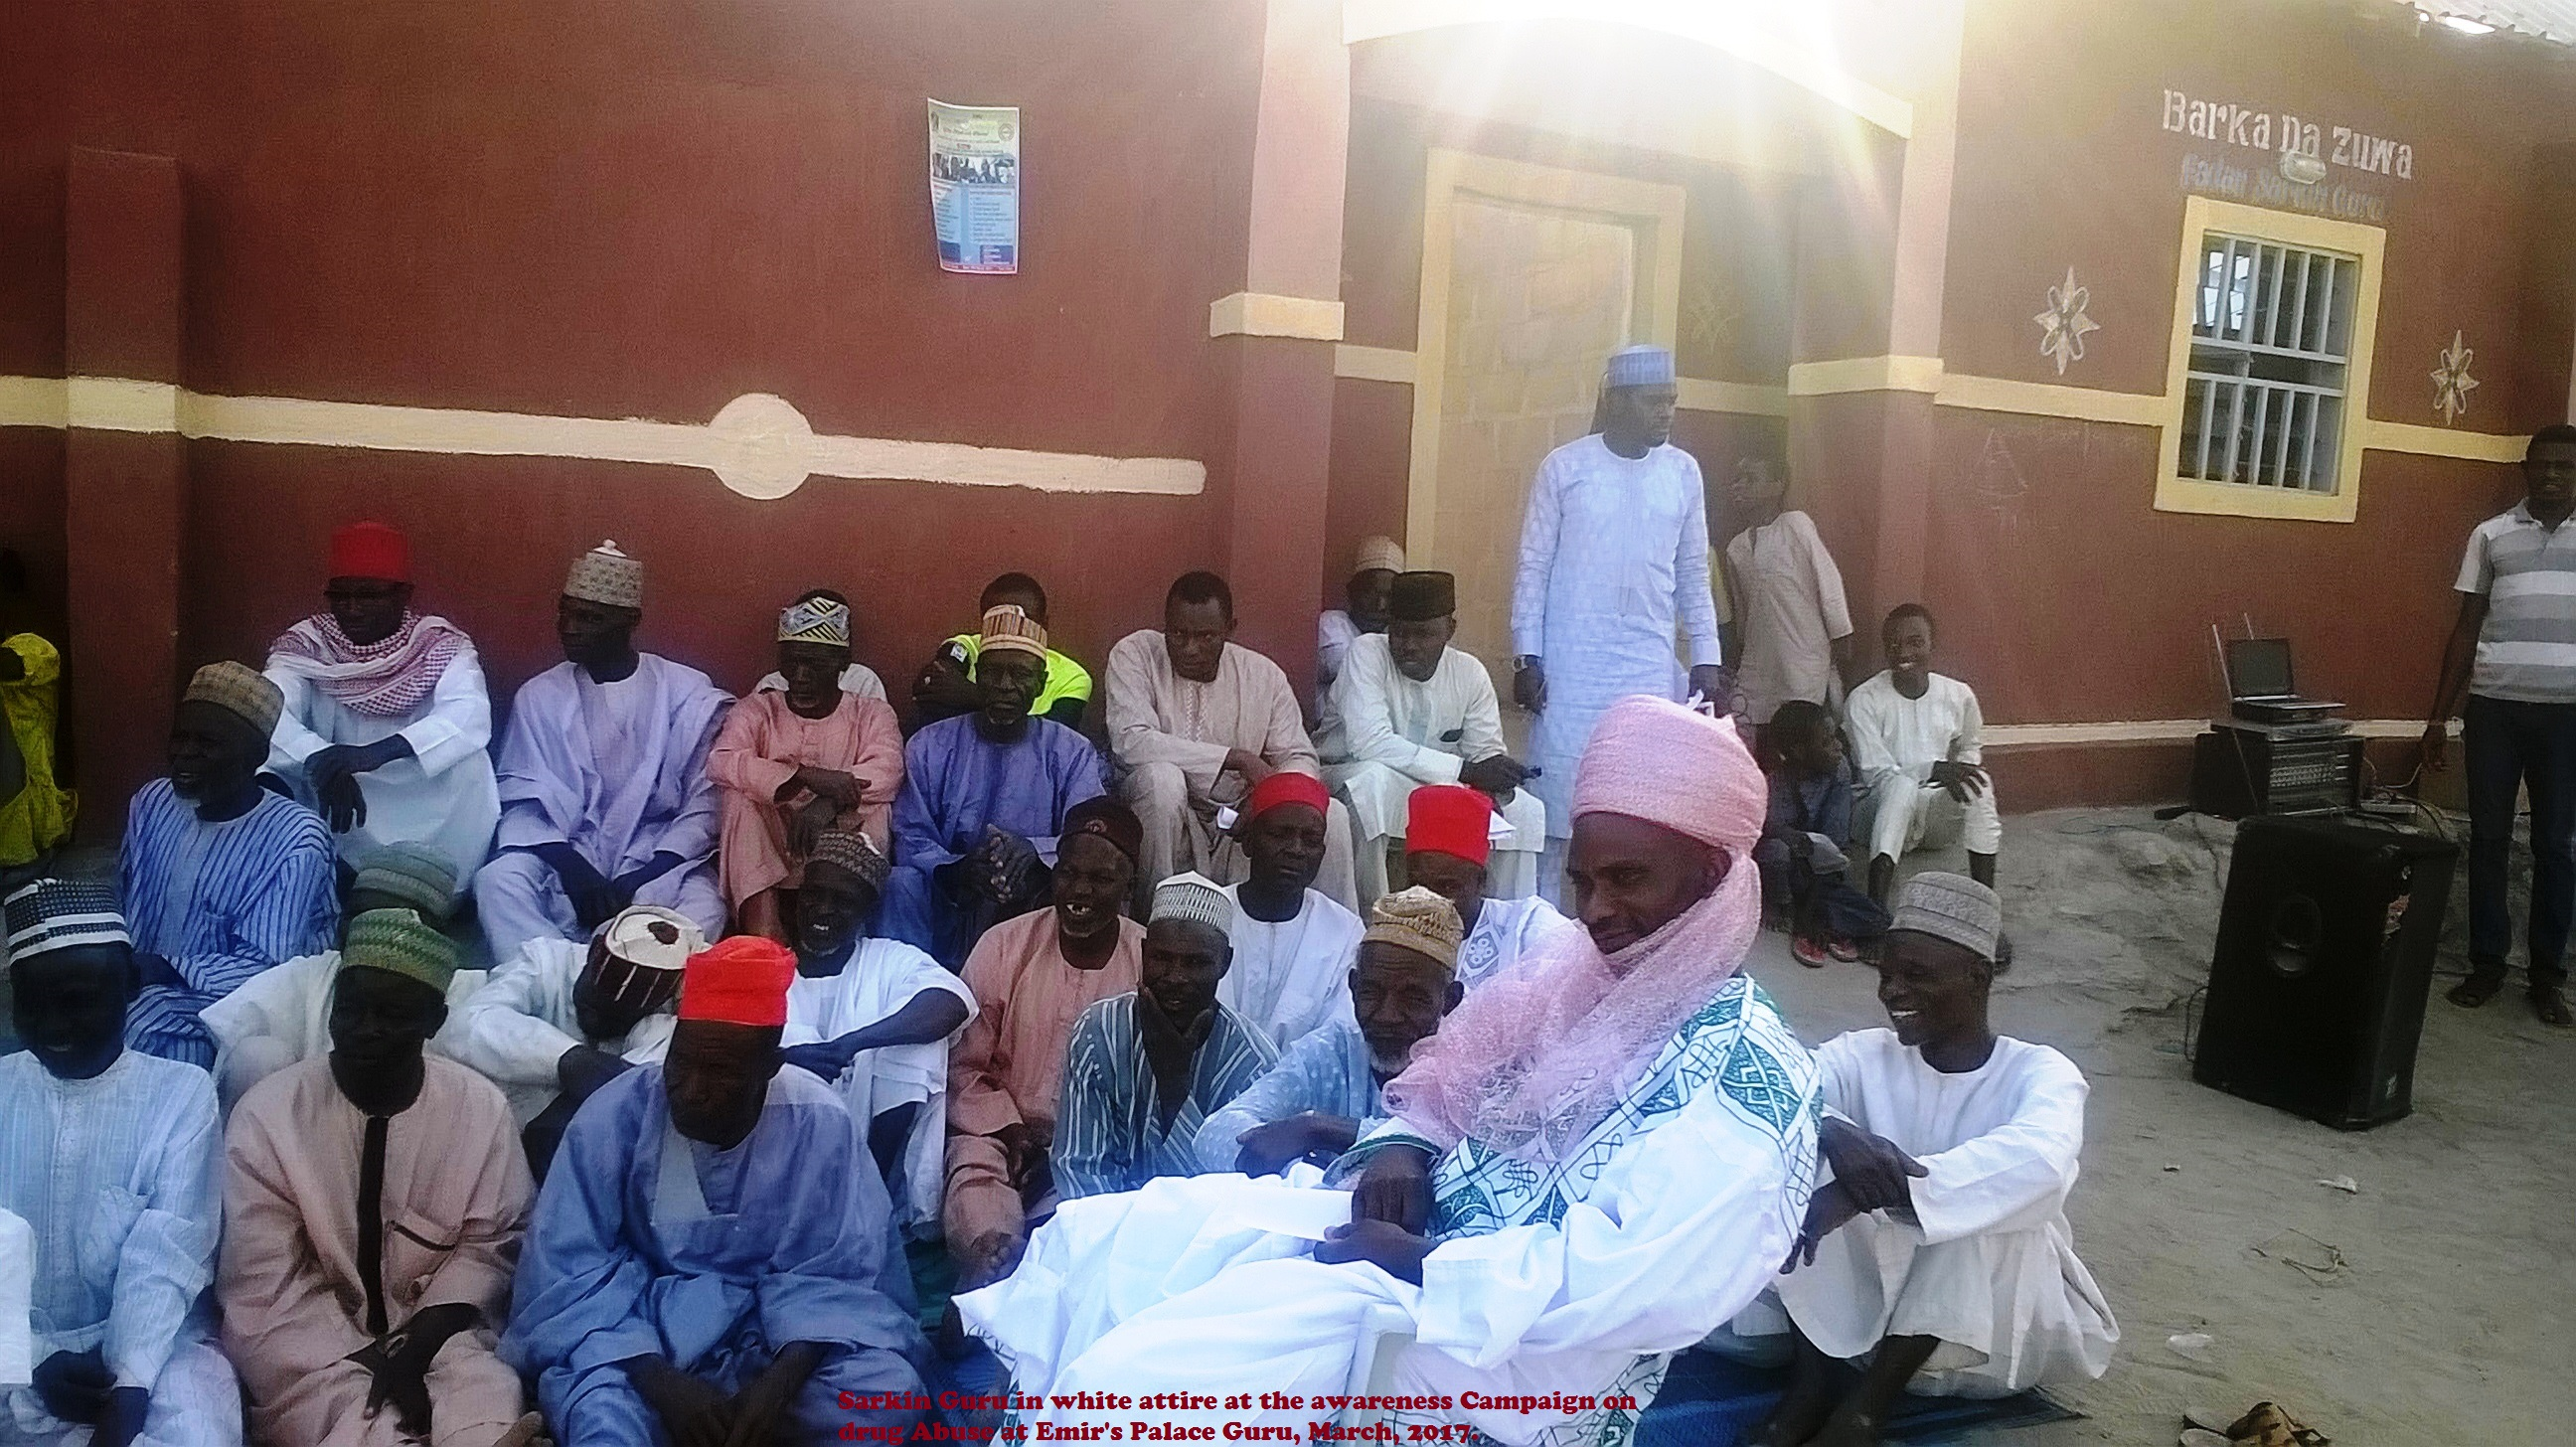 Sarkin Guru in white attire at the awareness Campaign on drug Abuse at Emir's Palace Guru, March, 2017.